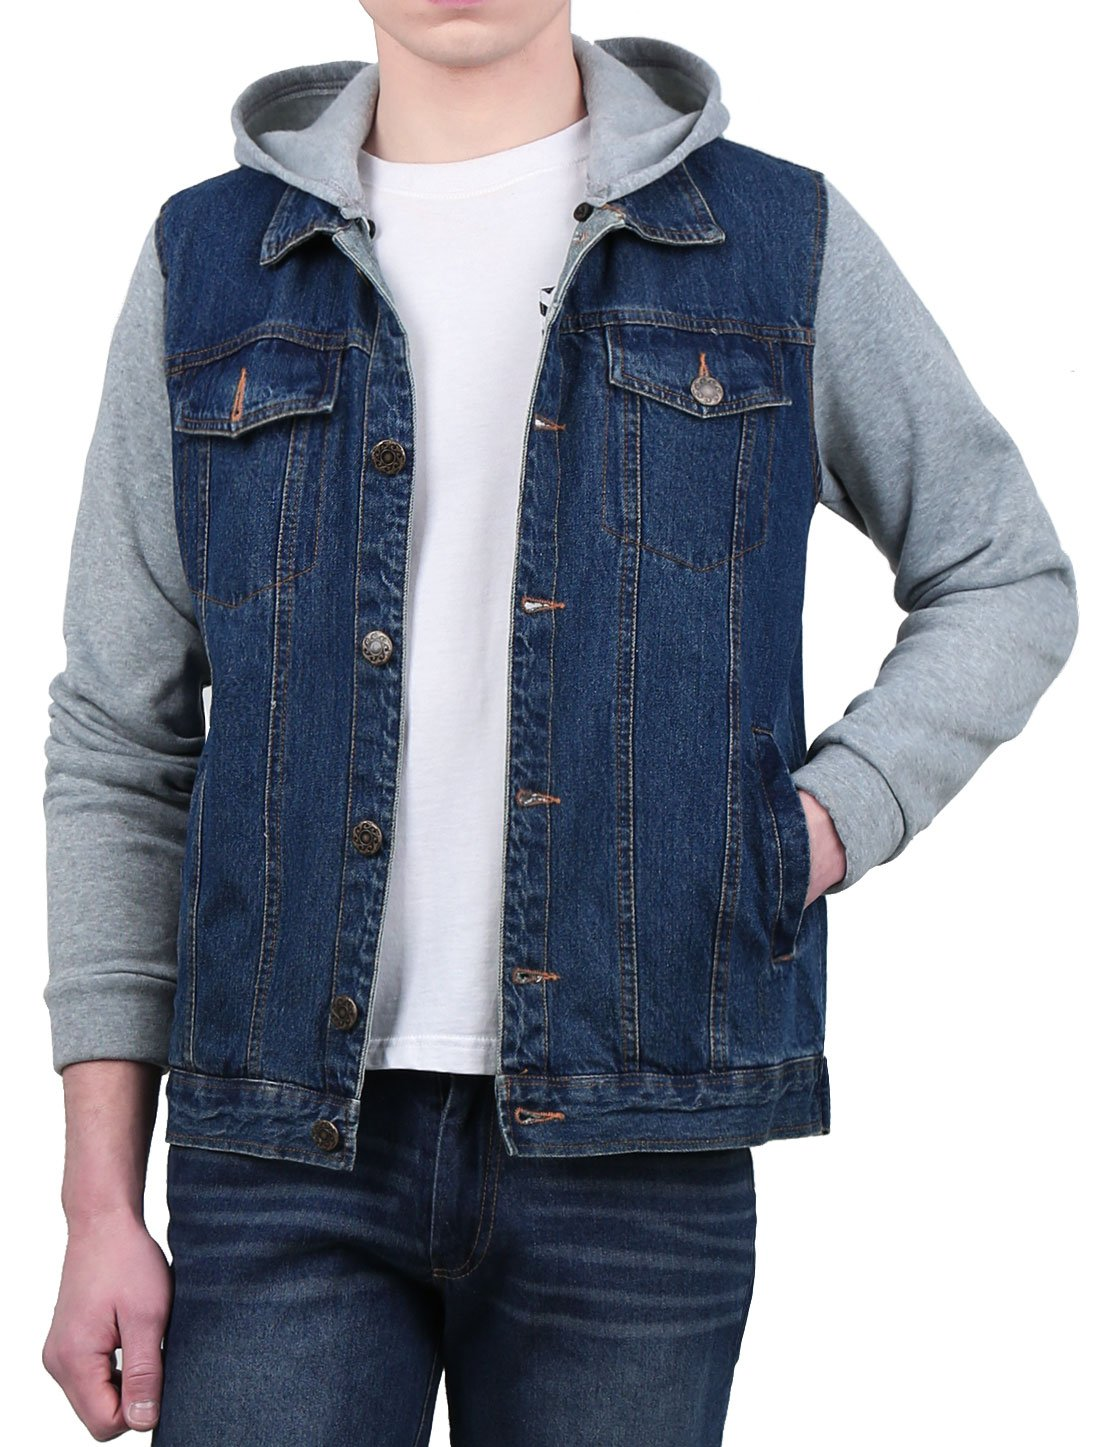 Allegra K Men Single Breasted Long Sleeves Denim Jacket w Removable Hood L Blue by uxcell